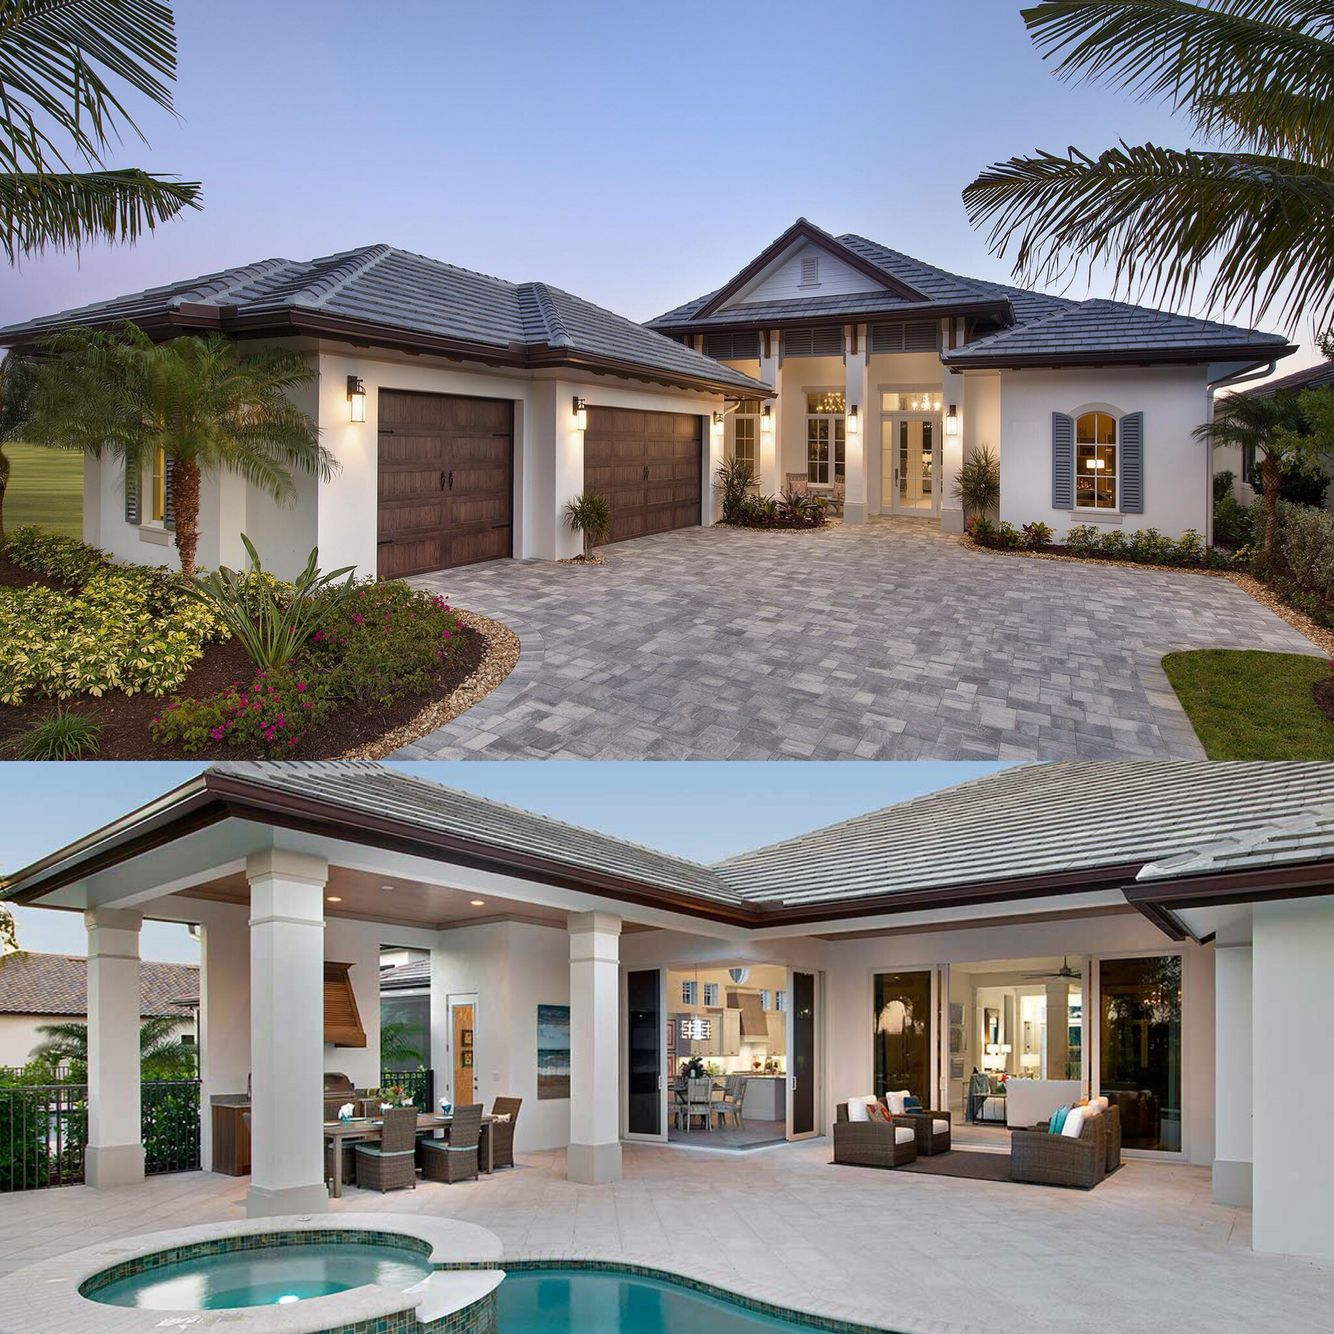 Contemporary Home Design: Plan 66342WE: 3 Bed Beauty With 2 Lanai